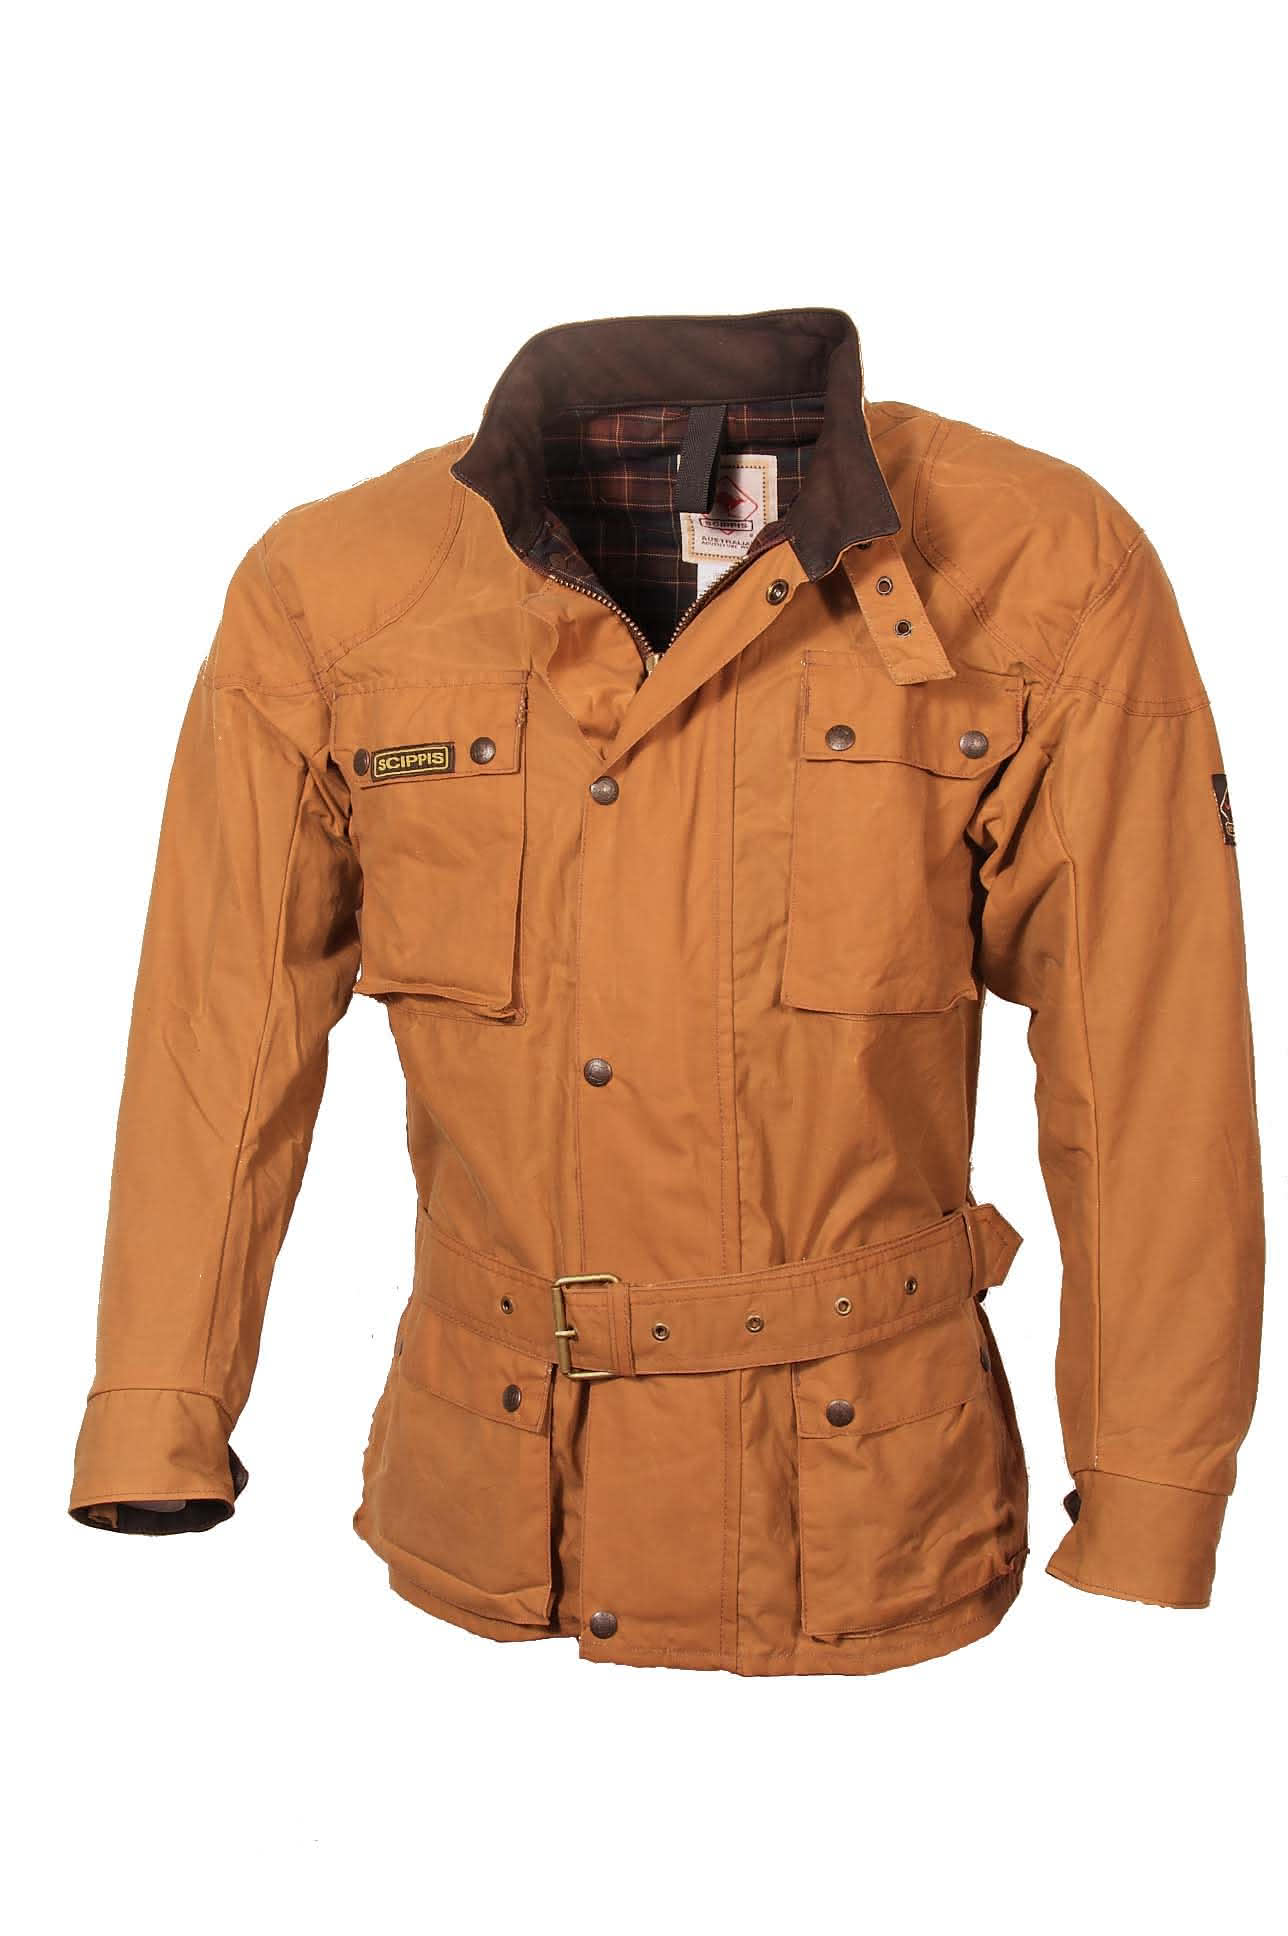 Scippis Belmore Jacket - 2J16 - Tan-XL